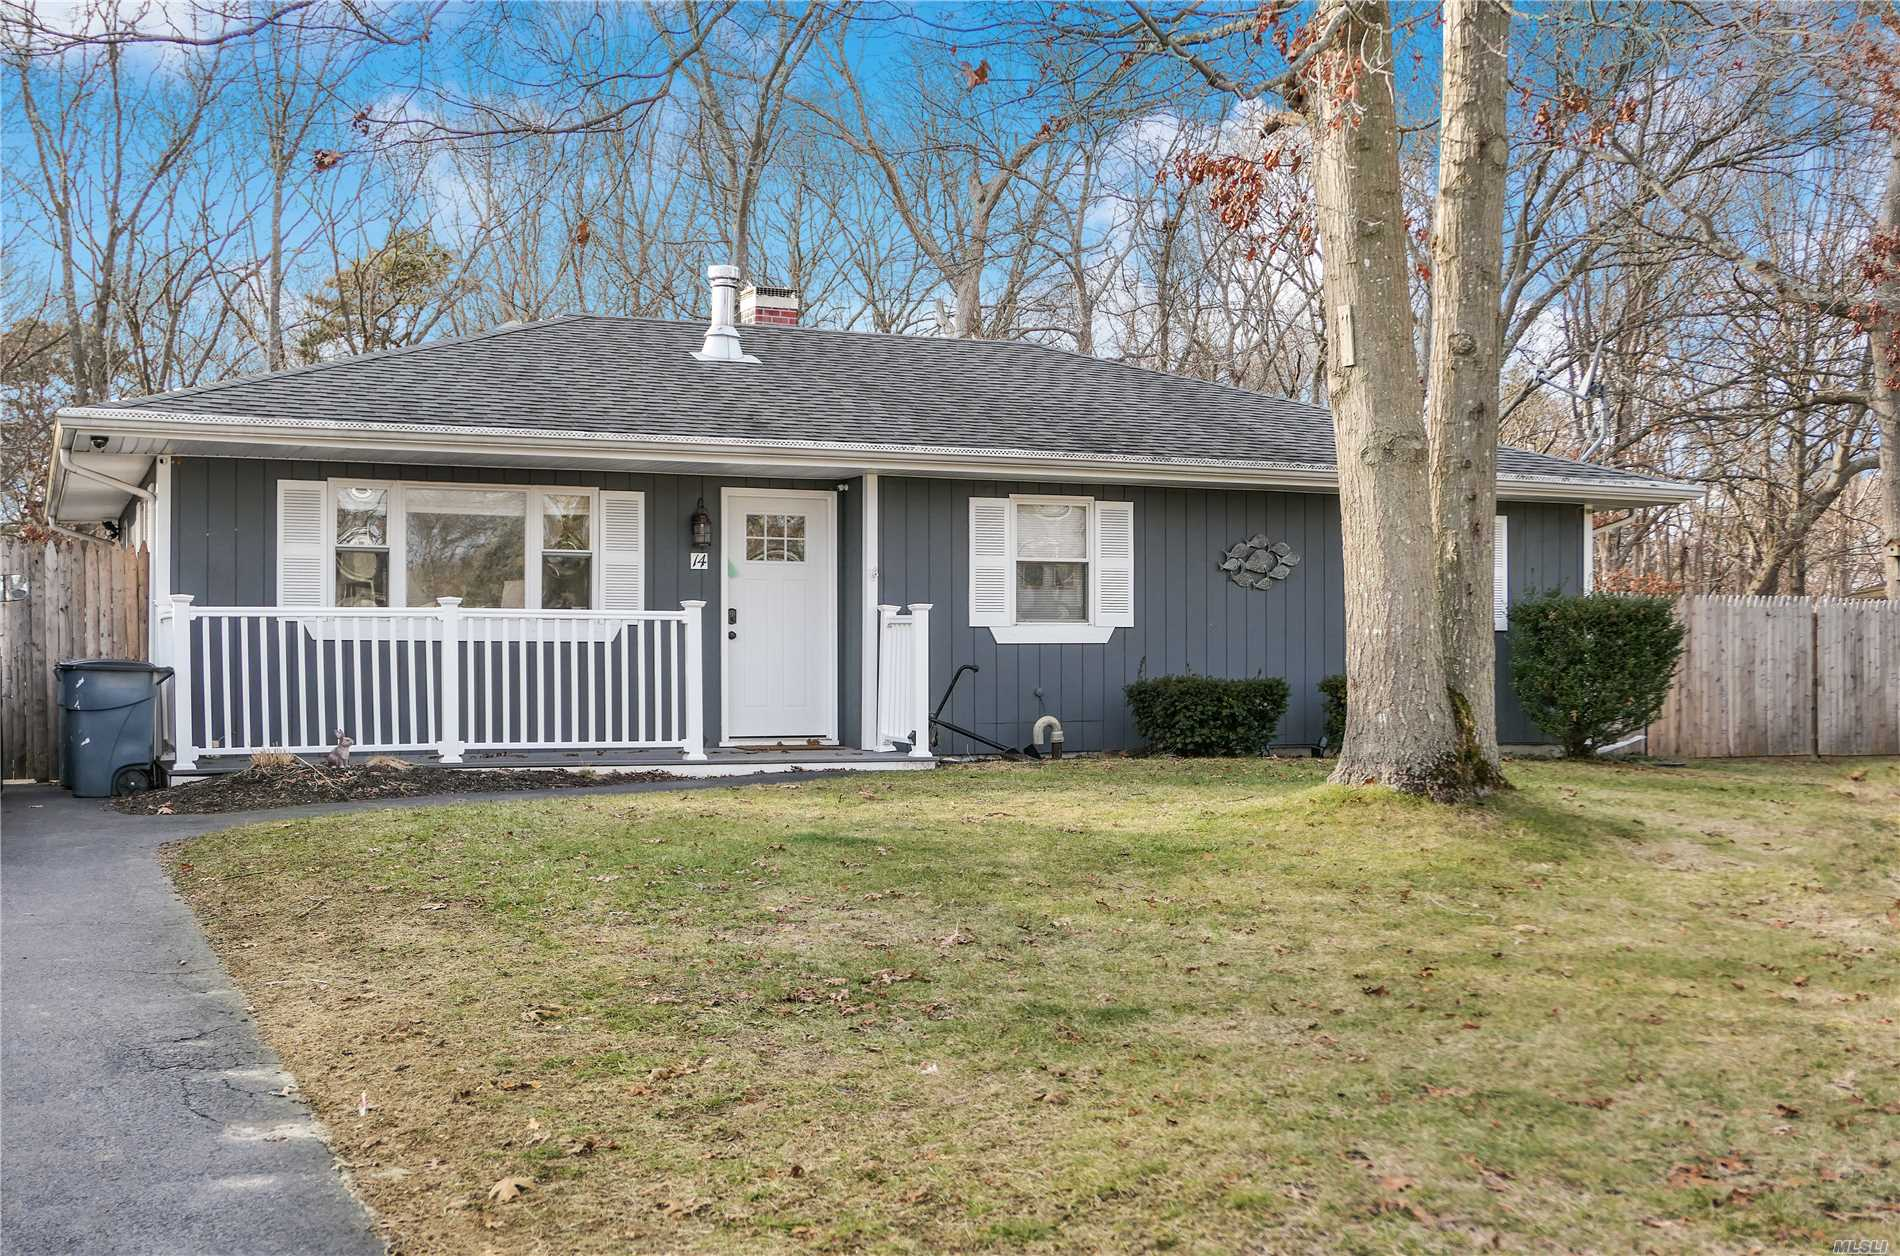 New To Market, A Well Maintained 3 Bedroom Home On A Quiet Block. Large Eik, Over 1/3 Of An Acre Property, Lots Of Windows And Very Bright, Wood Burning Stove To Keep Oil Bills Low